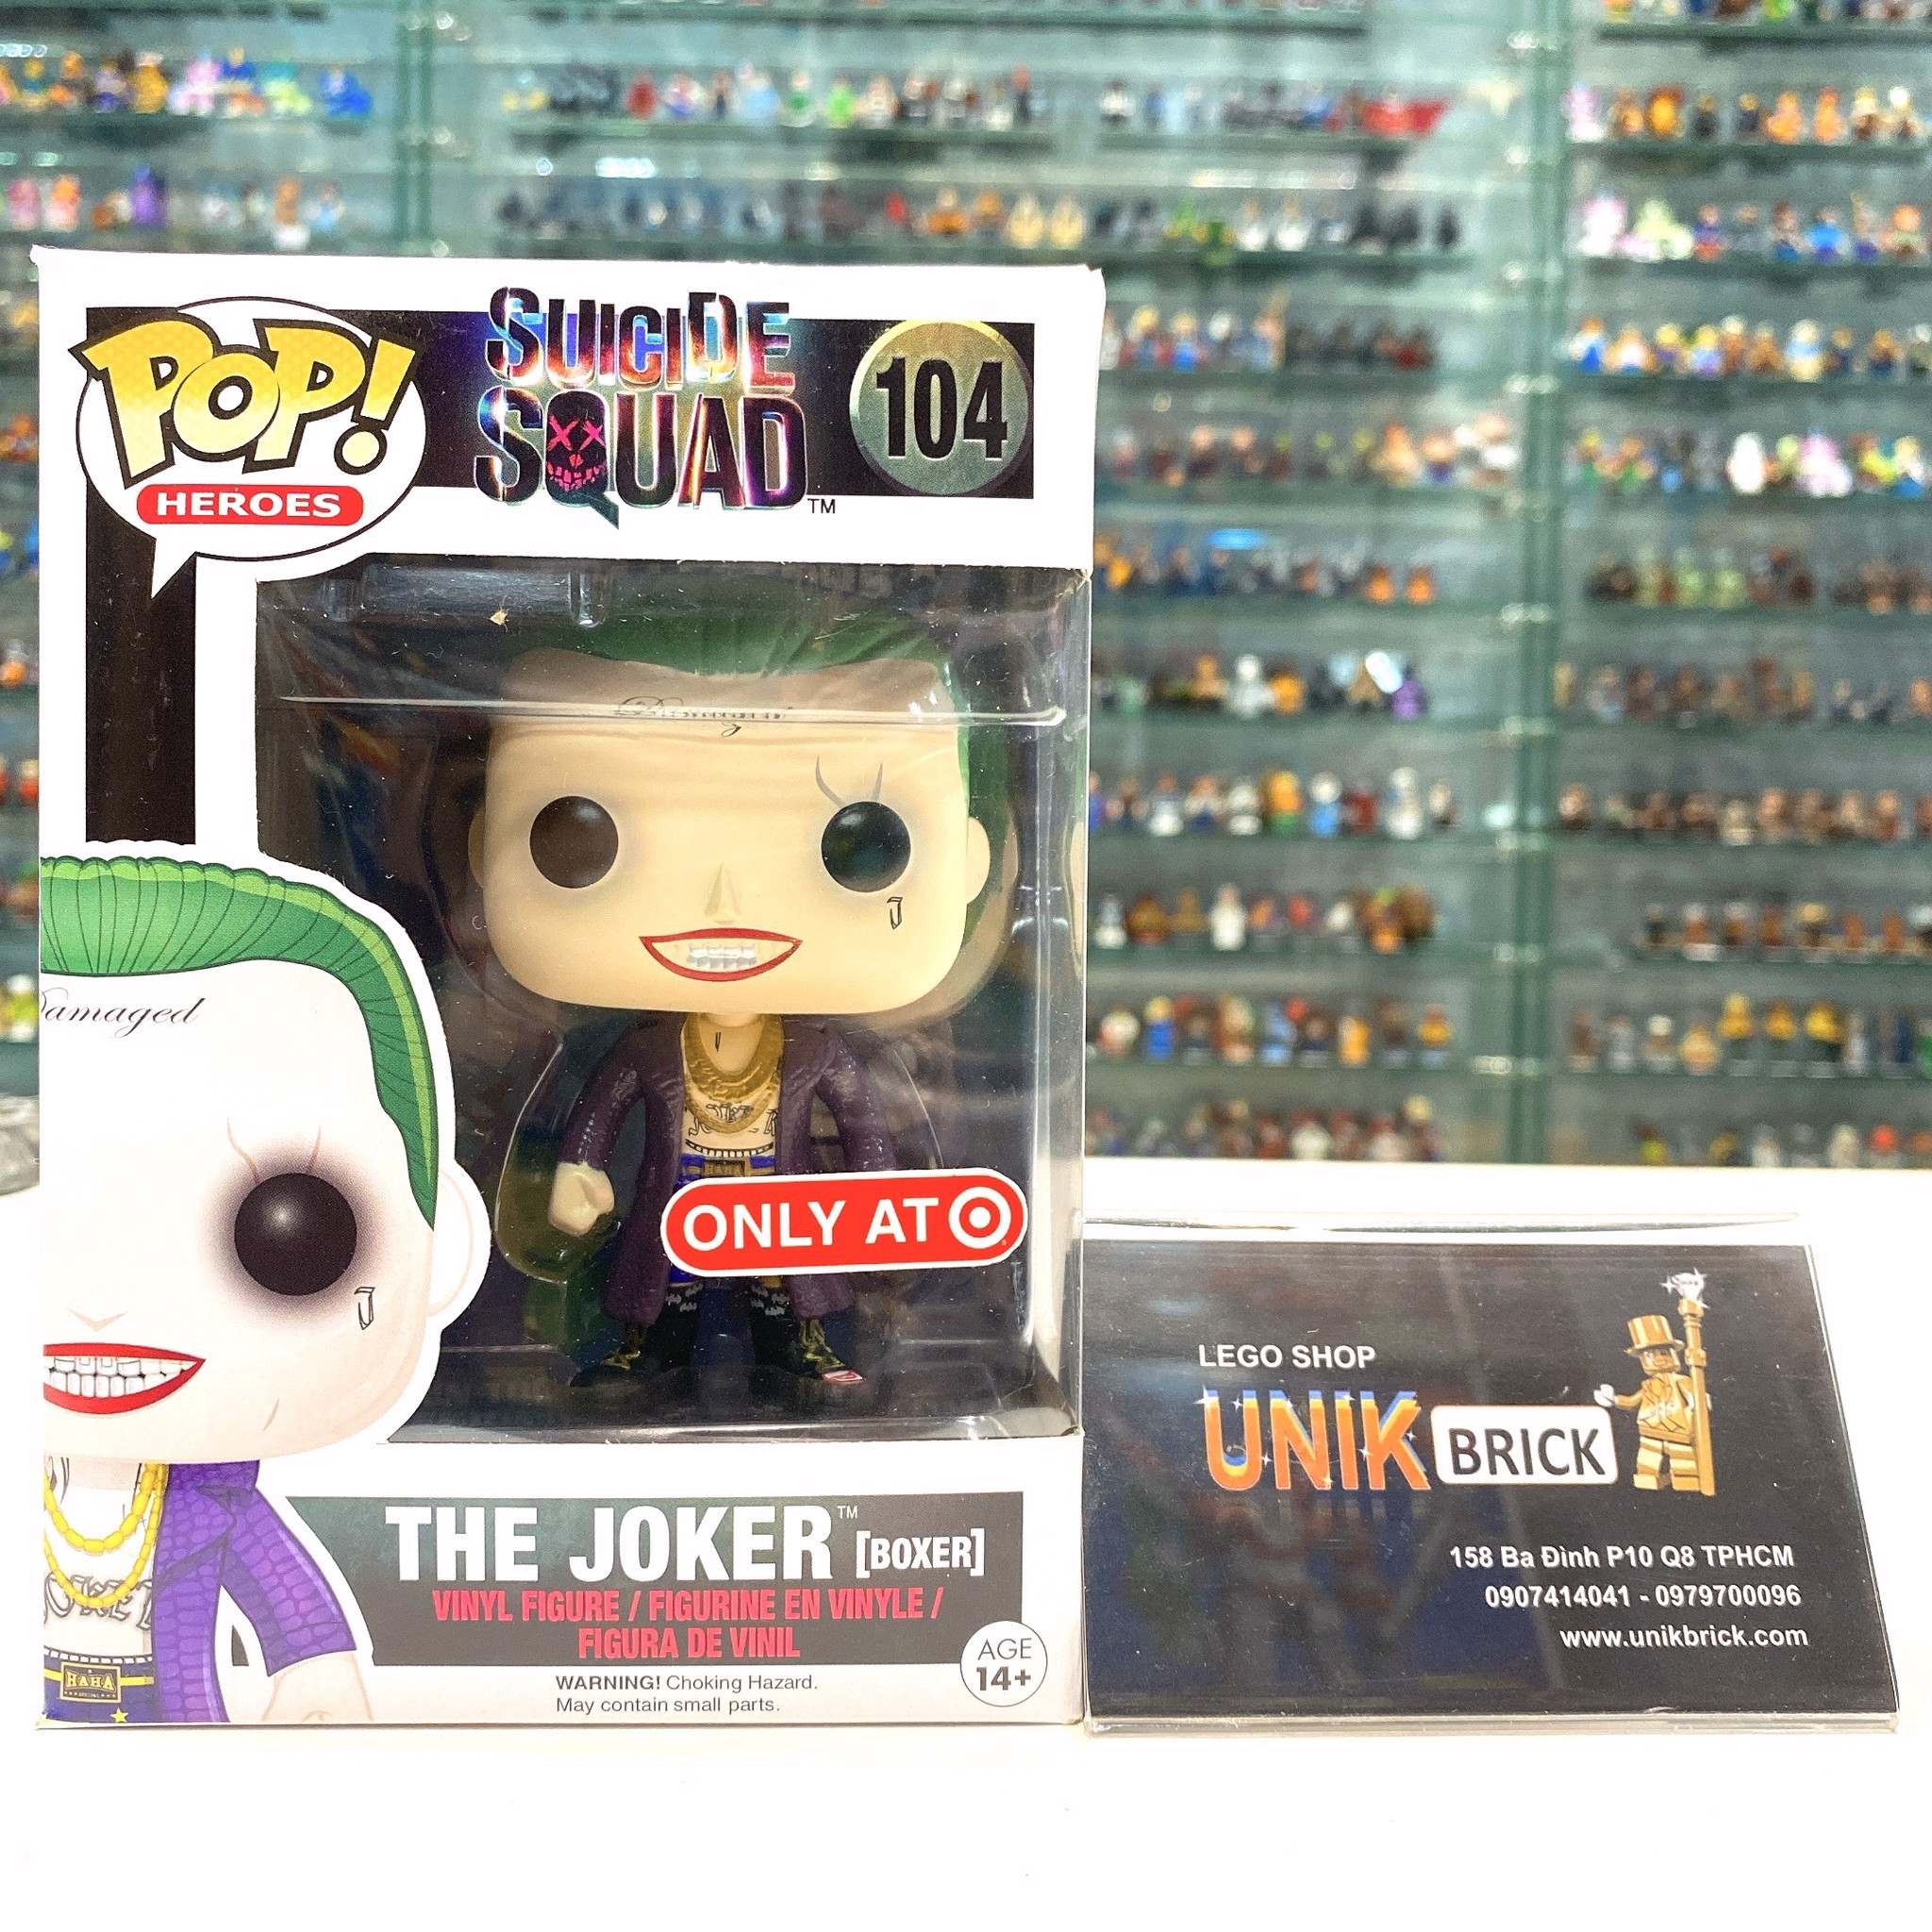 FUNKO POP Suicide Squad 104 The Joker